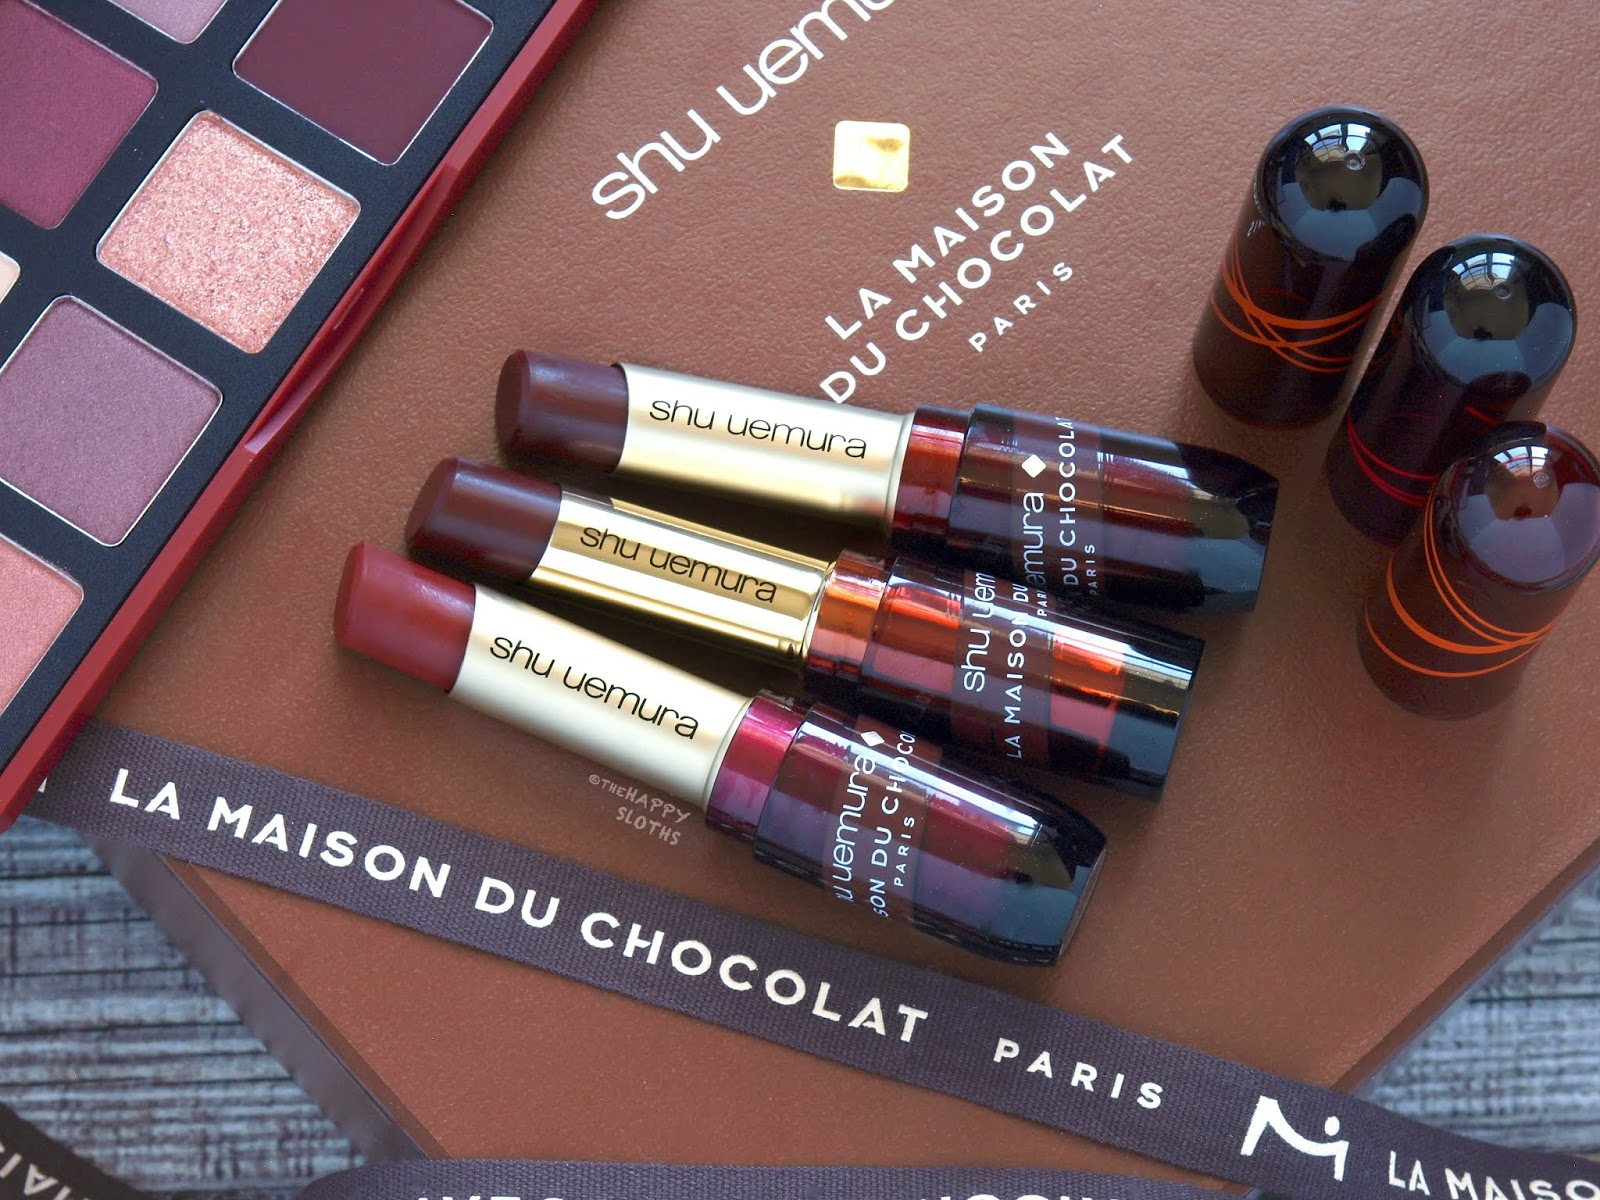 Shu Uemura | Holiday 2018 La Maison du Chocolat Collection | Rouge Unlimited Lipstick: Review and Swatches